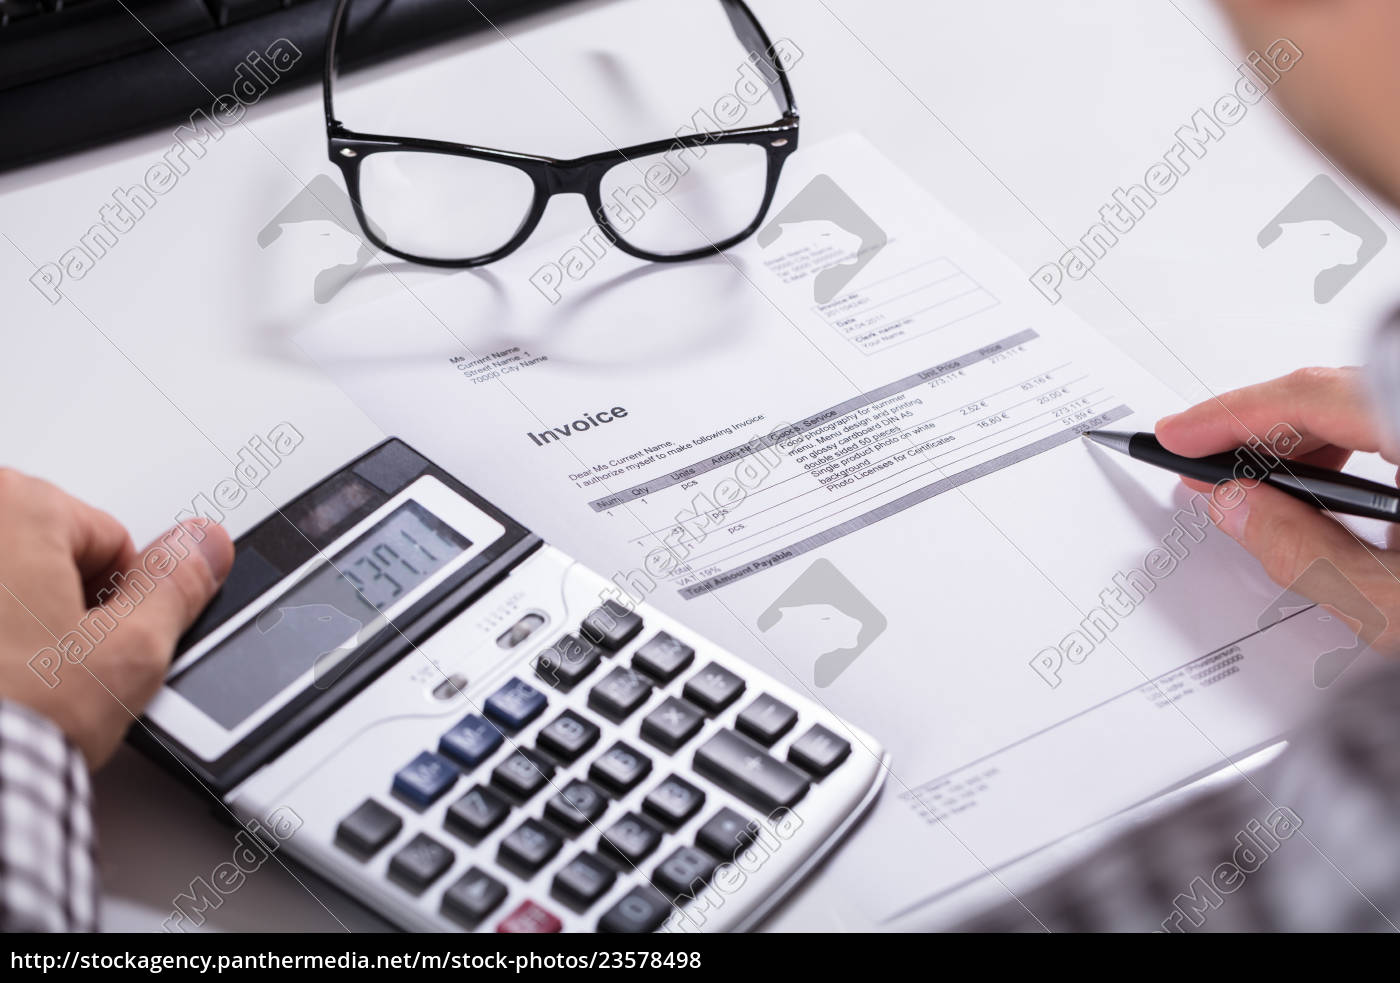 businessman's, hands, calculating, invoice - 23578498